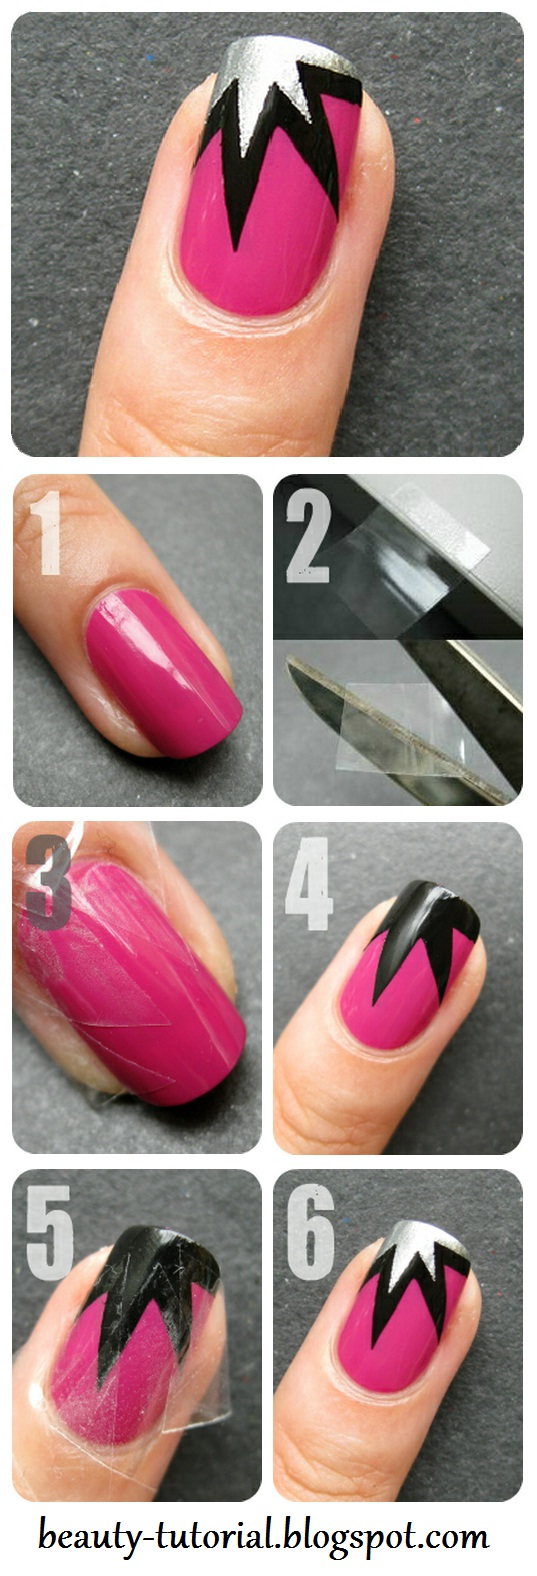 Explosion nail art design tape manicure tutorial